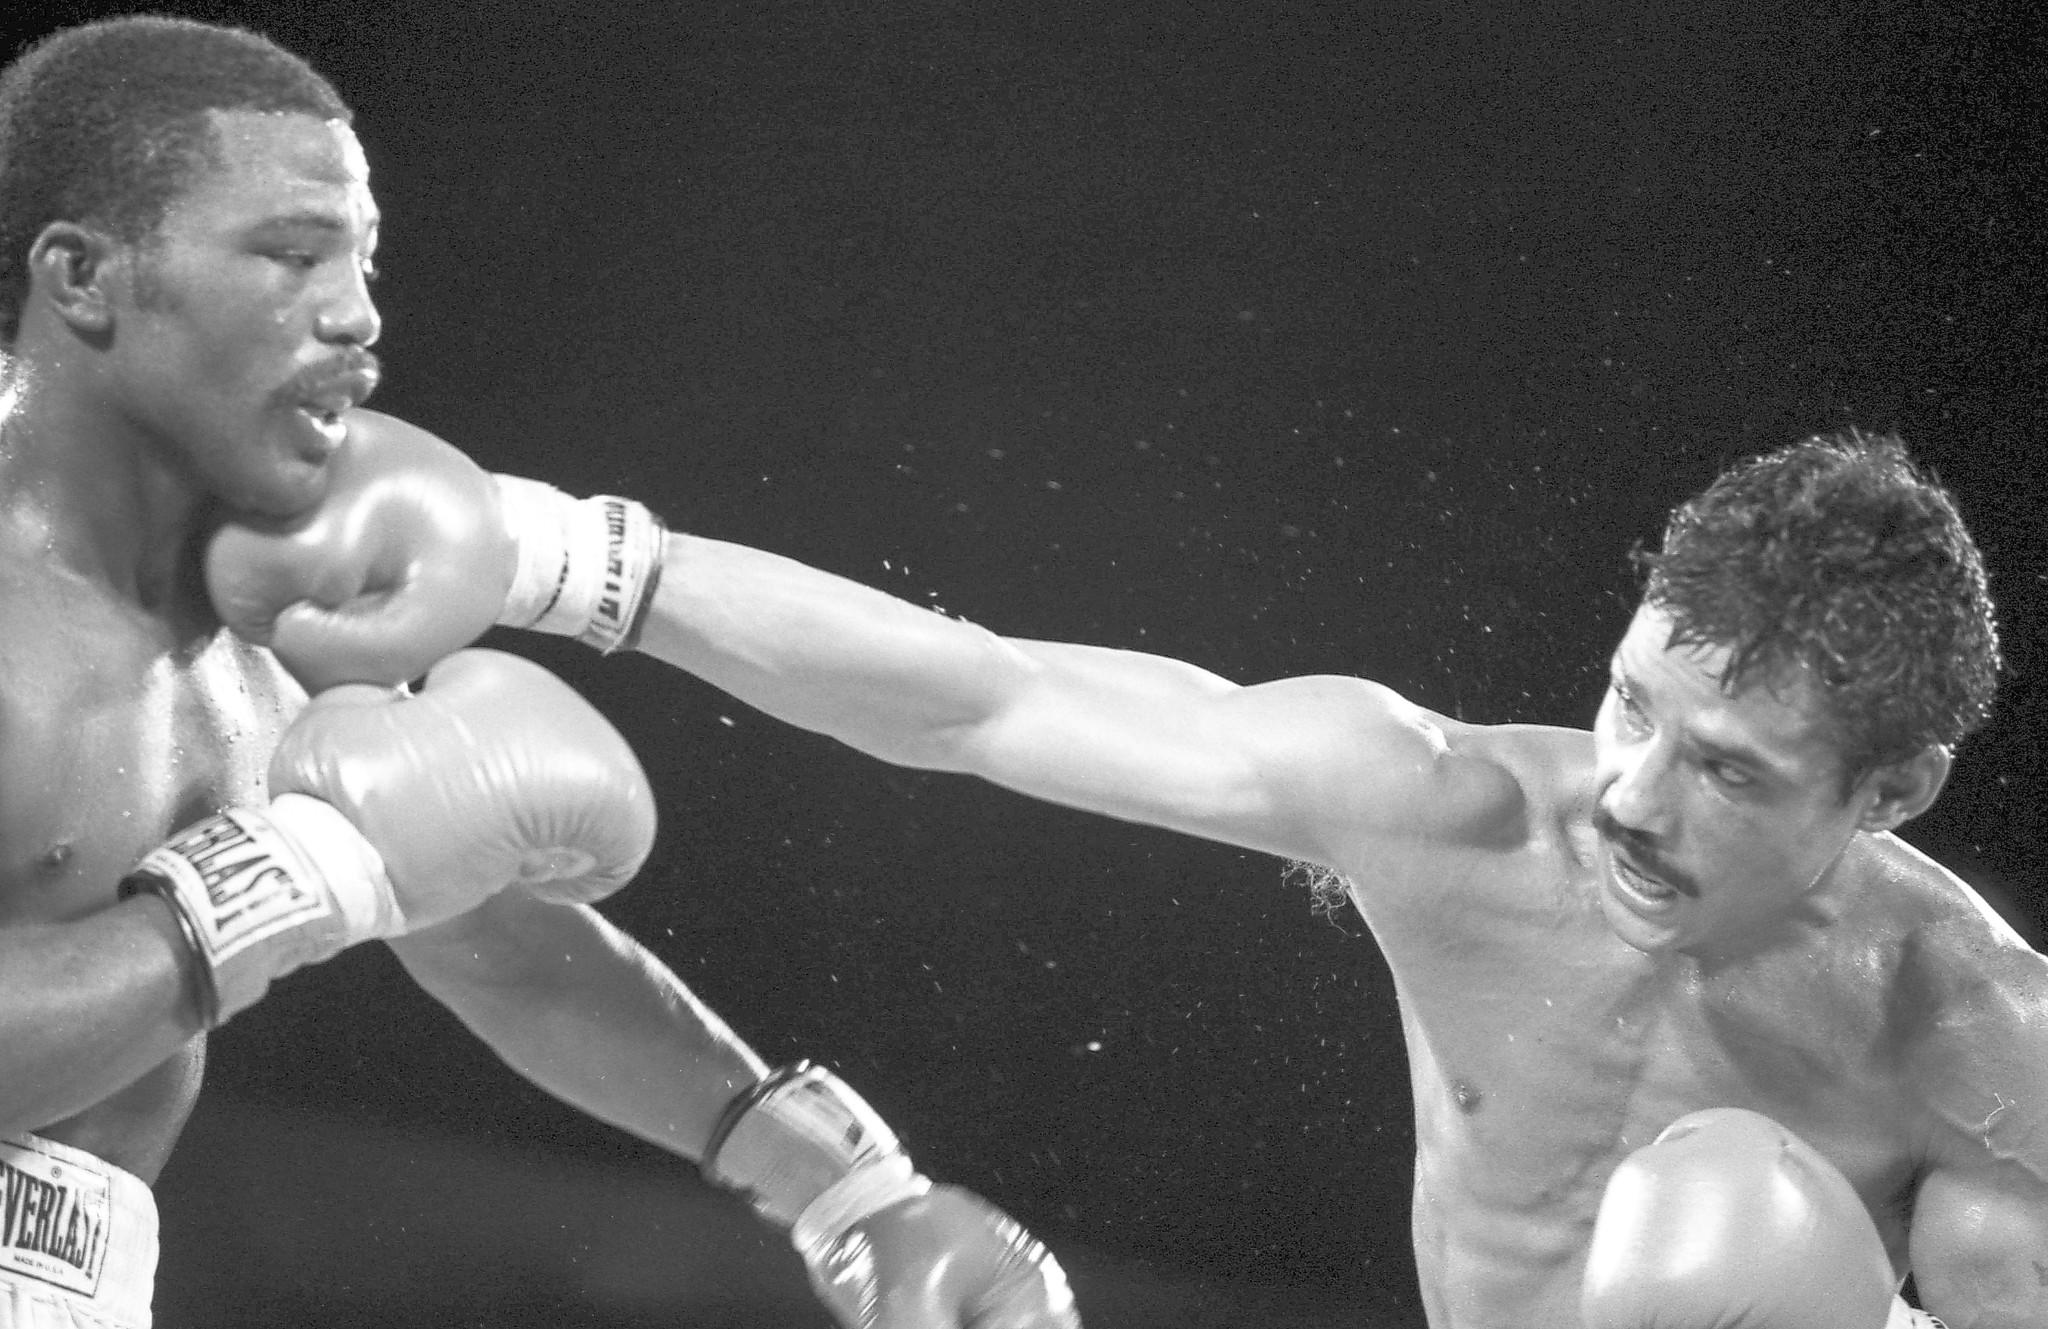 Alexis Arguello, right, connects with a right jab against Aaron Pryor during a fight at Caesars Palace on September 9, 1983 in Las Vegas, Nevada.